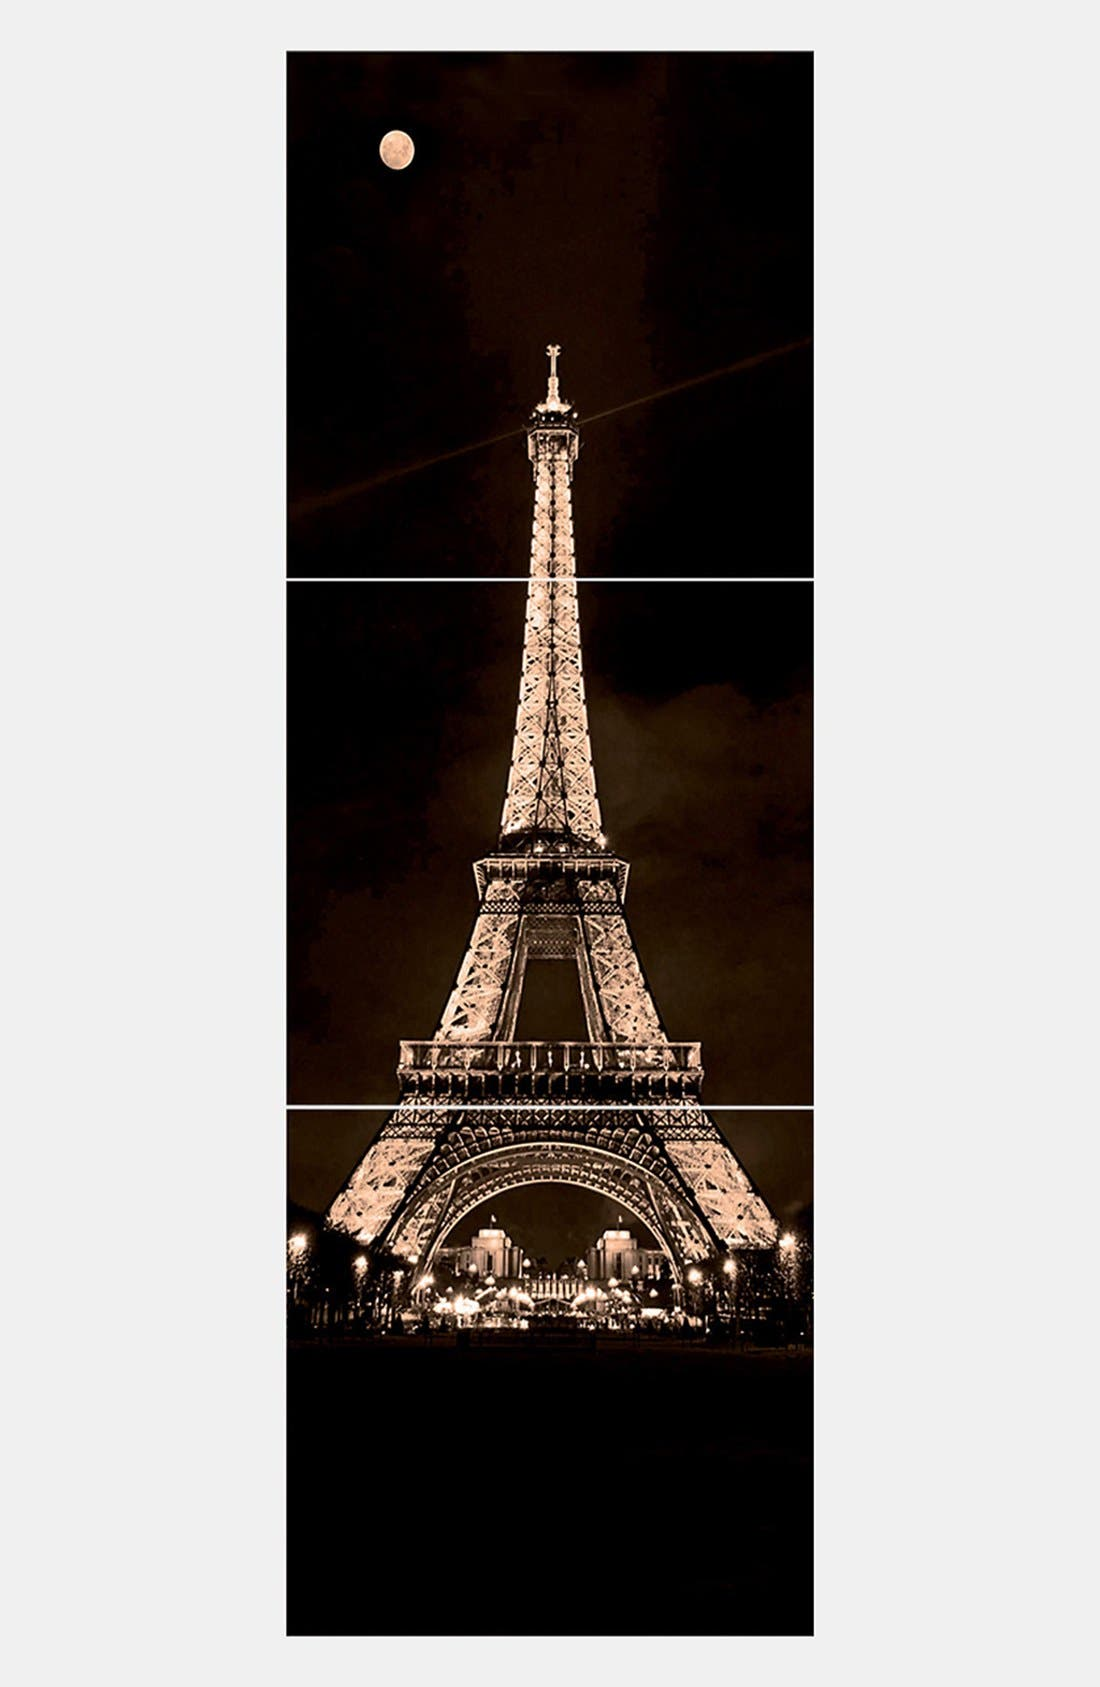 Alternate Image 1 Selected - Wallpops Eiffel Tower Wall Art